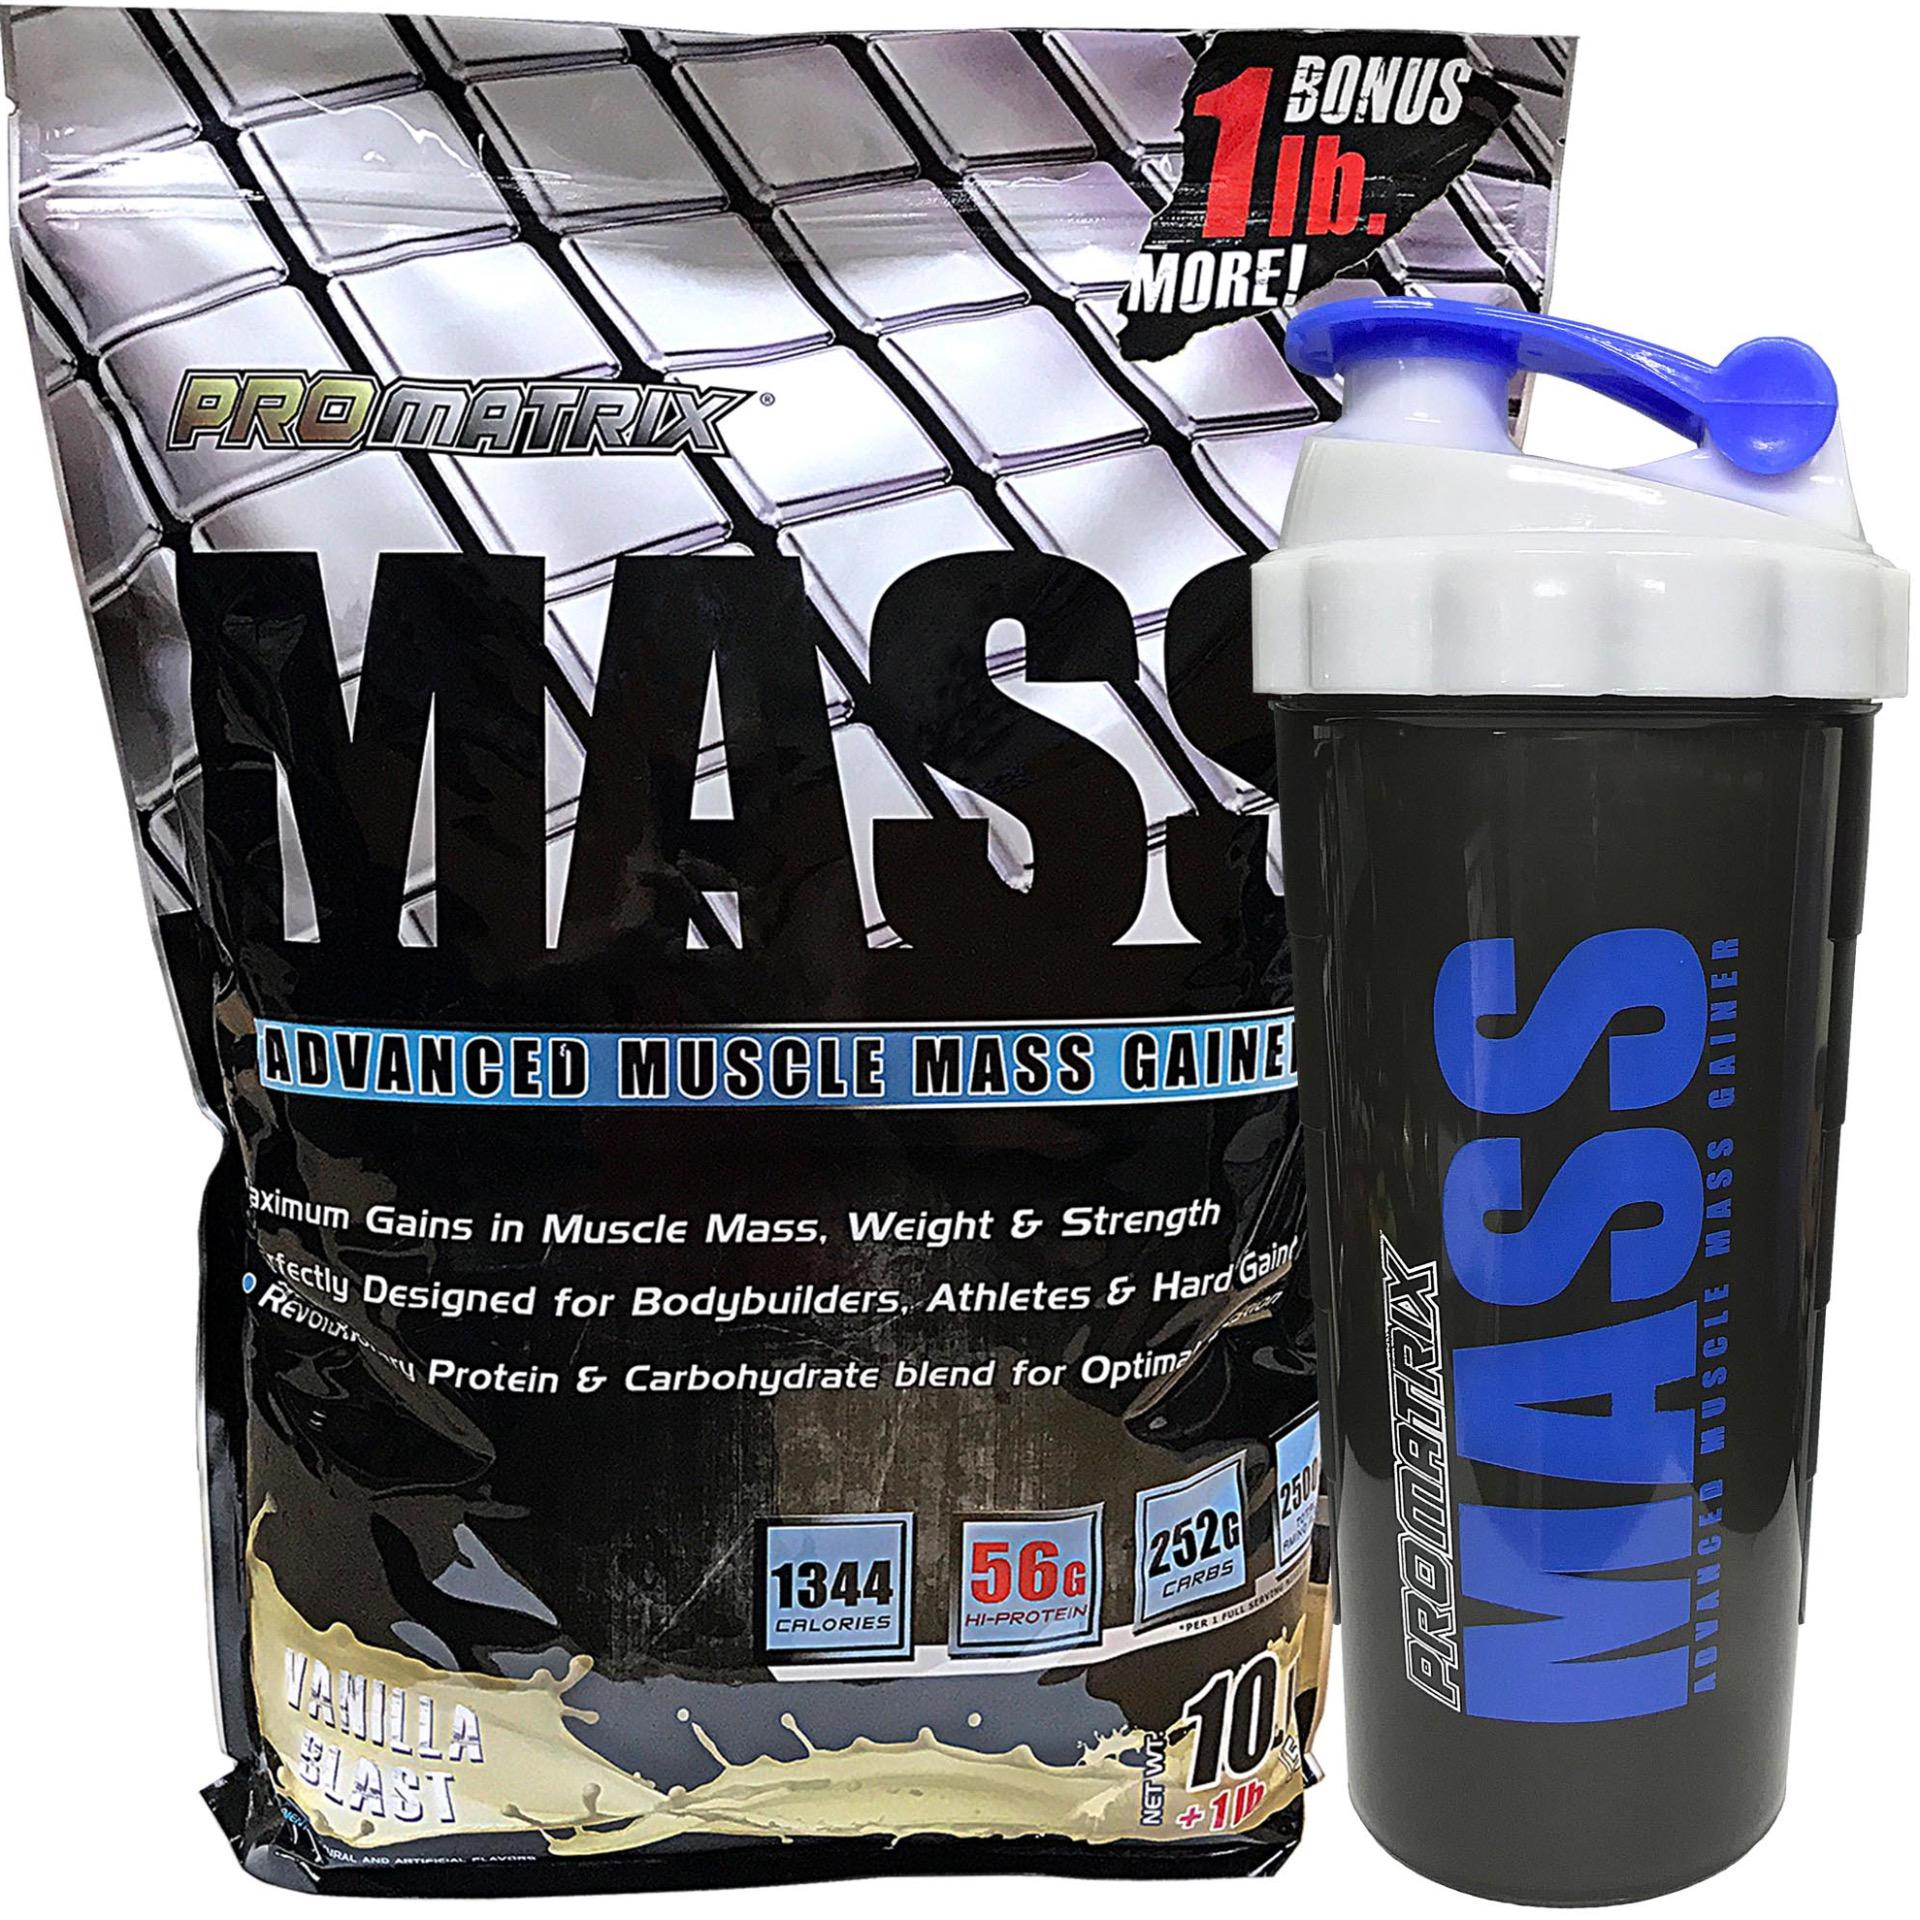 Weight Gain Brands Food On Sale Prices Set Reviews Mutant Mass 15 Lb Promatrix Advanced Muscle Protein Gainer 11 Pounds Vanilla With Free Whey Shaker